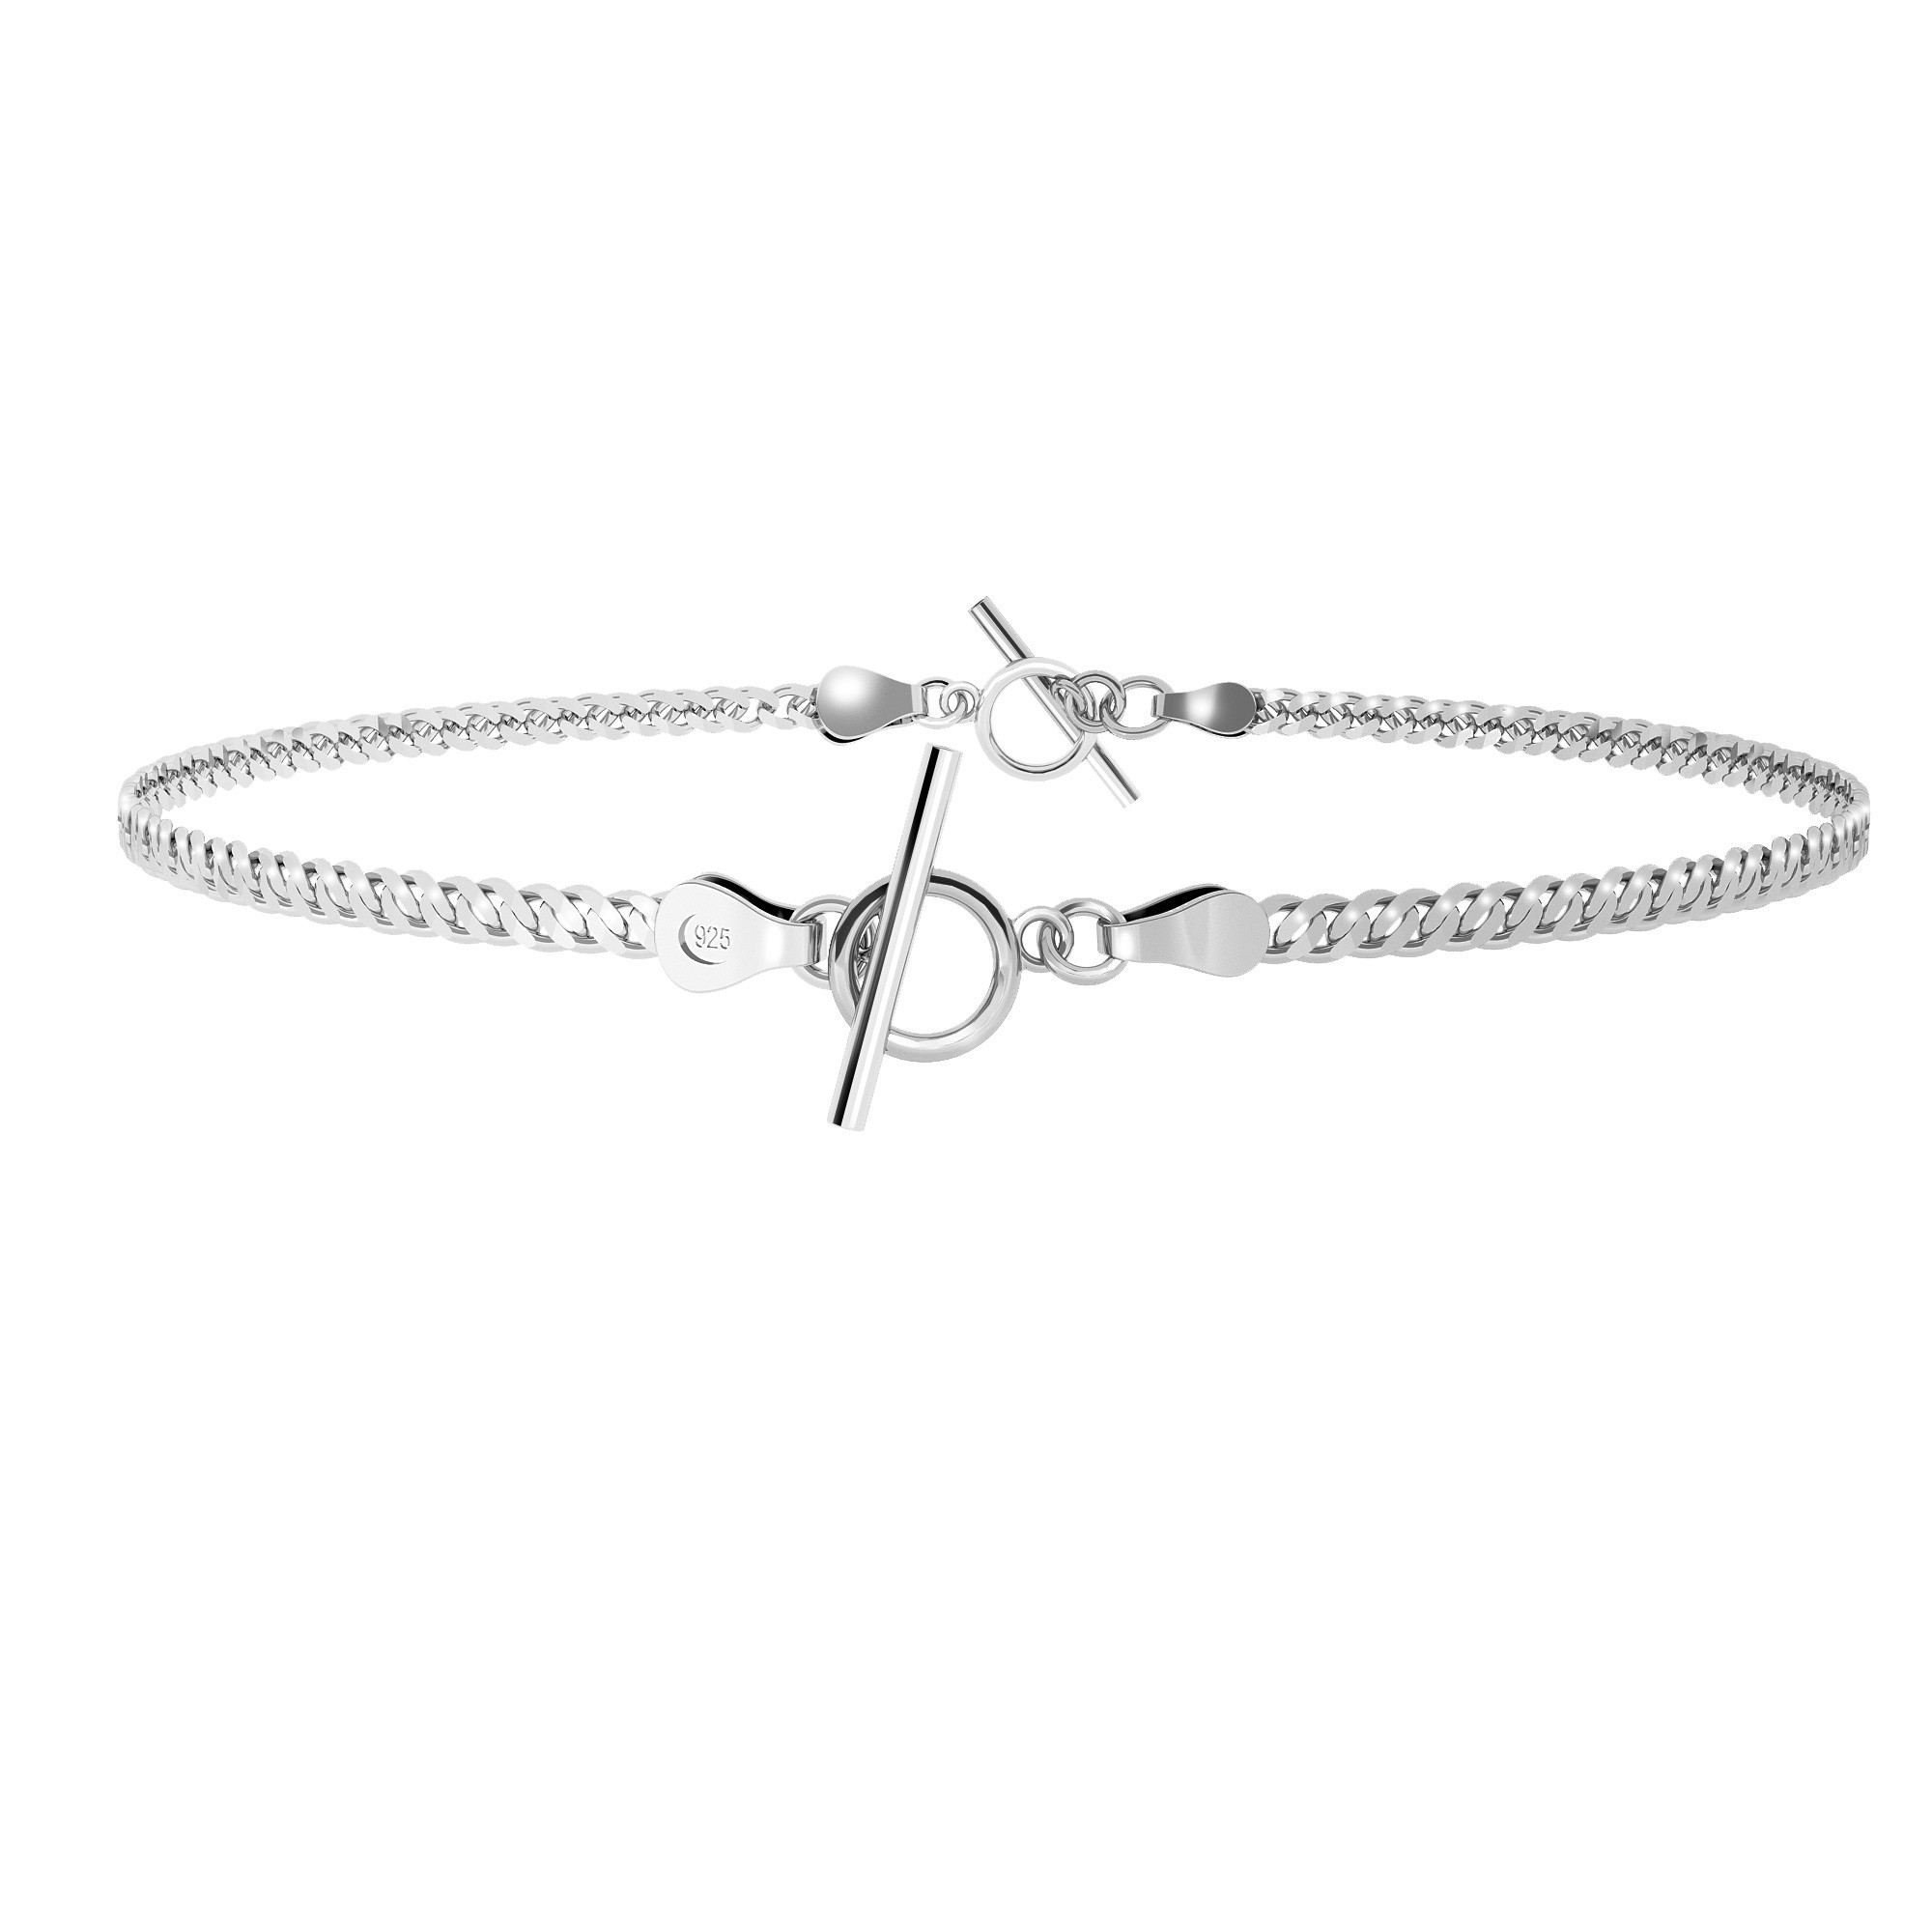 Choker or bracelet, chain sterling silver 925